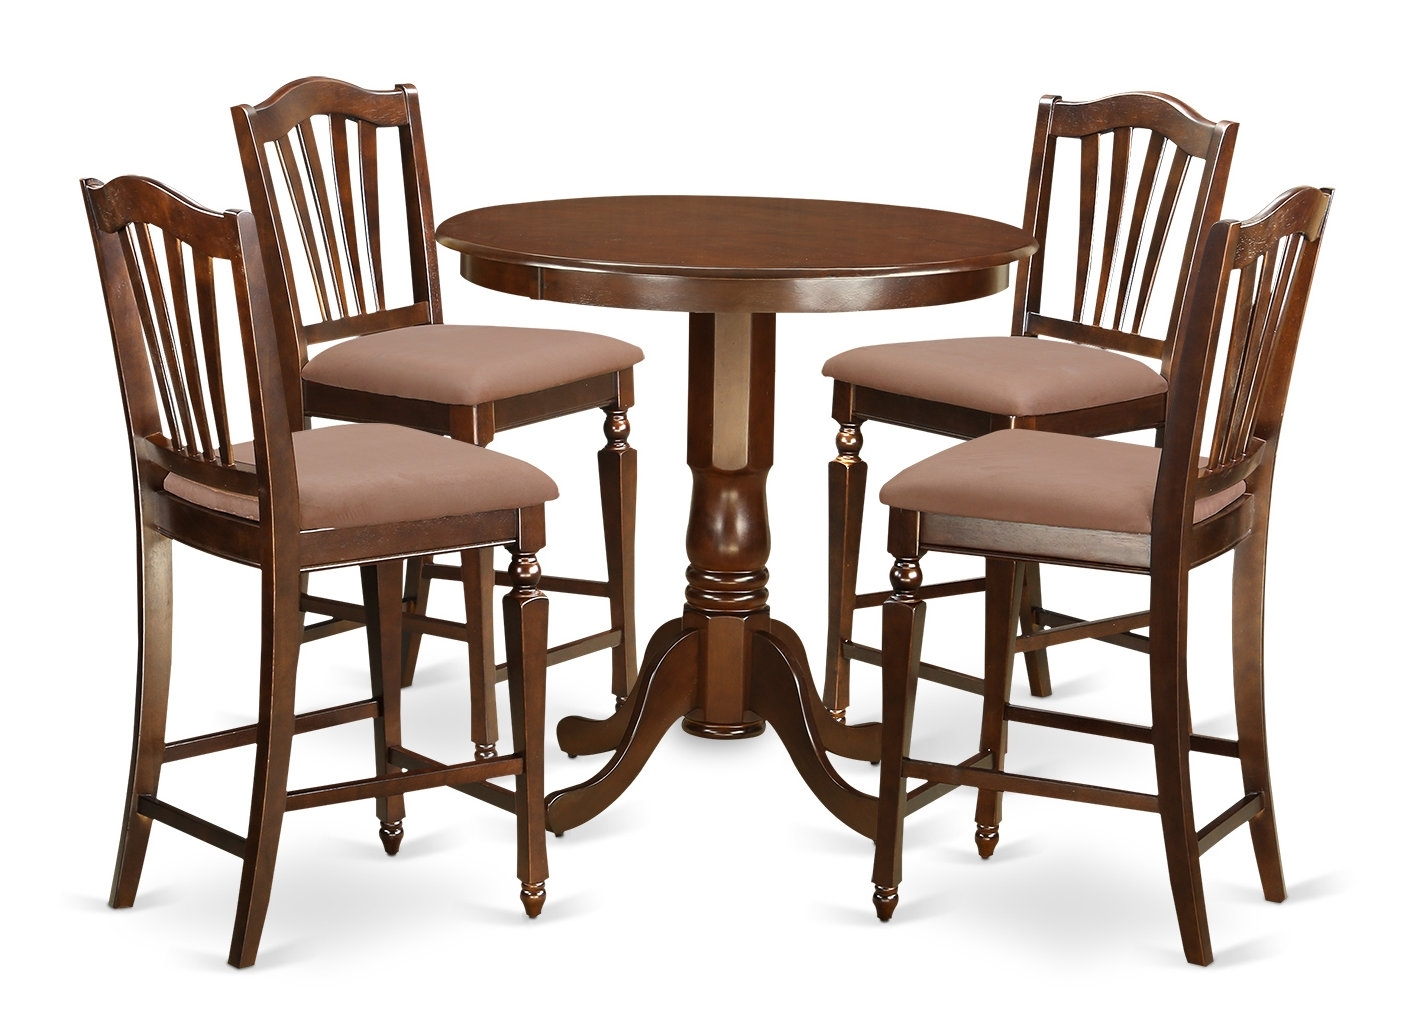 East West Jackson 5 Piece Counter Height Pub Table Set | Wayfair Intended For Latest Jaxon 5 Piece Extension Counter Sets With Wood Stools (Photo 6 of 20)